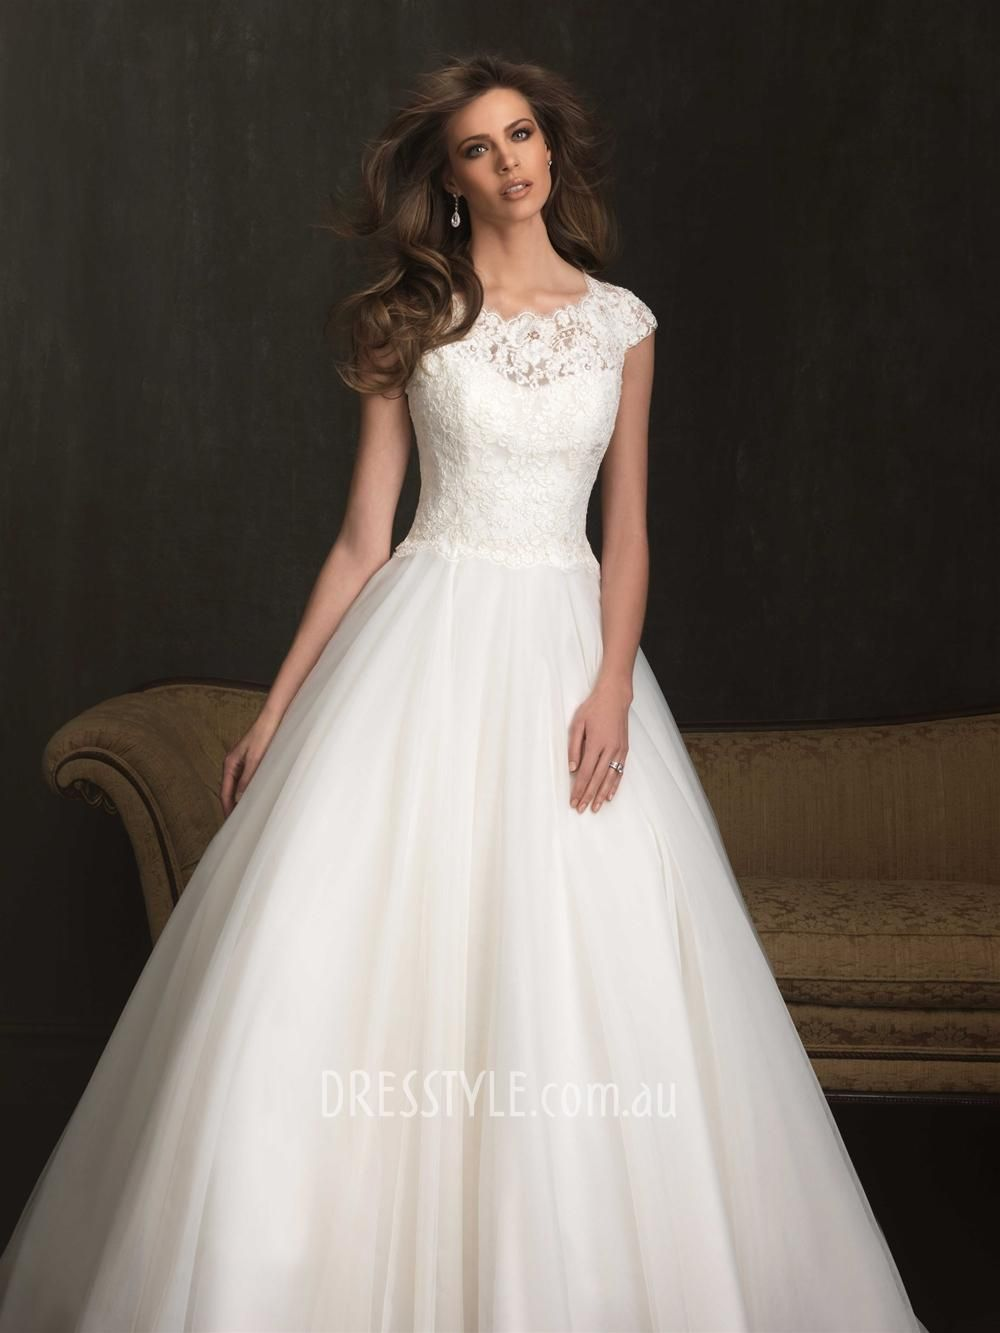 capped sleeve wedding dresses   ... Gown Scoop Neck Cap Sleeve Lace ...